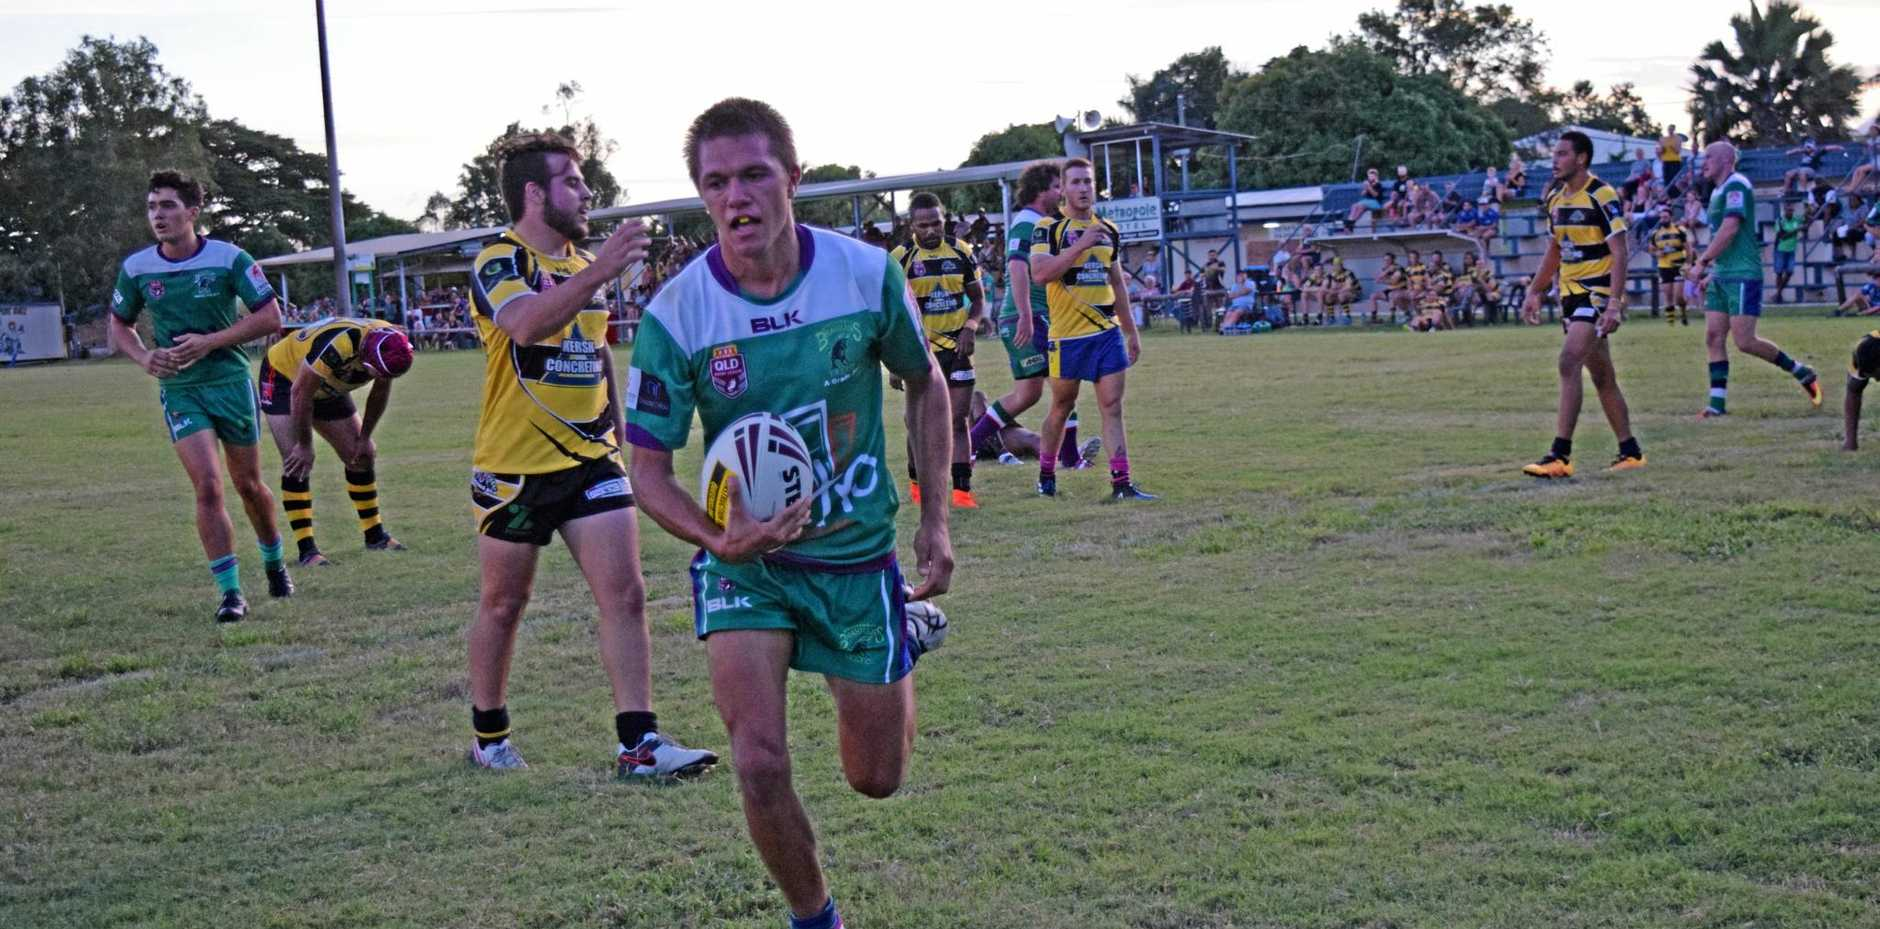 IN FORM: Brahmans player Byron Taylor scored three tries at the Sam Faust memorial match at Les Stagg Oval on Saturday night.